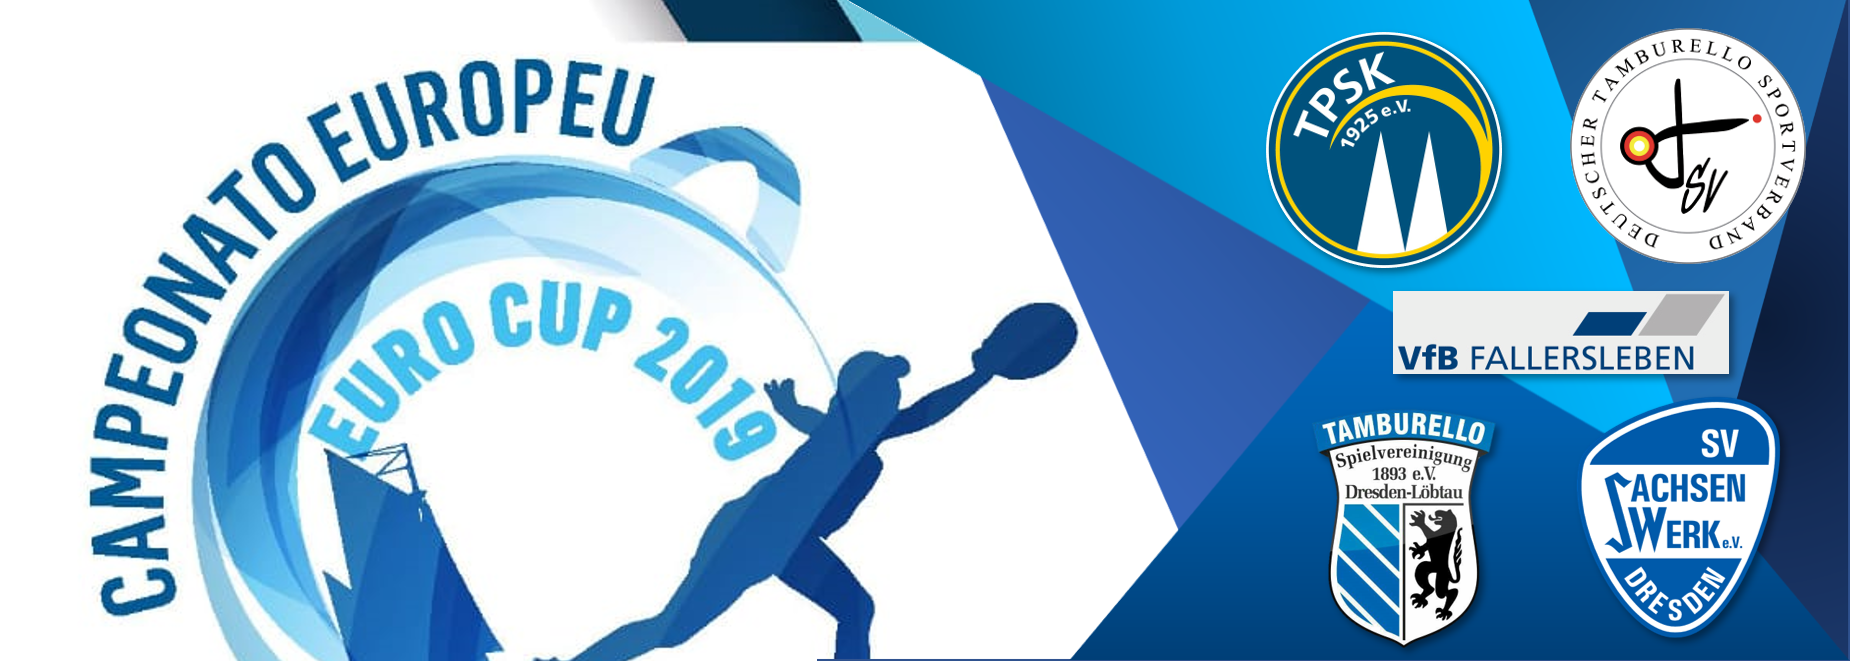 Indoor Europacup 2019